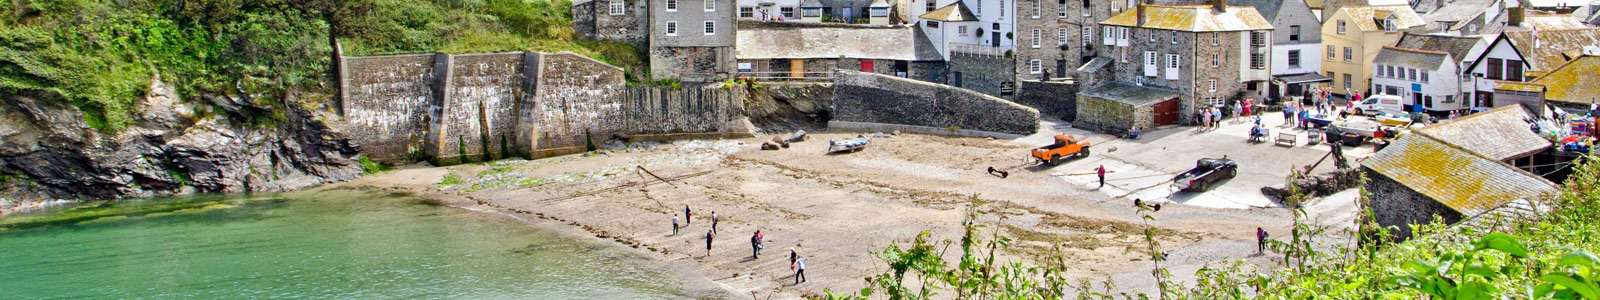 Things to do in Cornwall: Visit Port Isaac